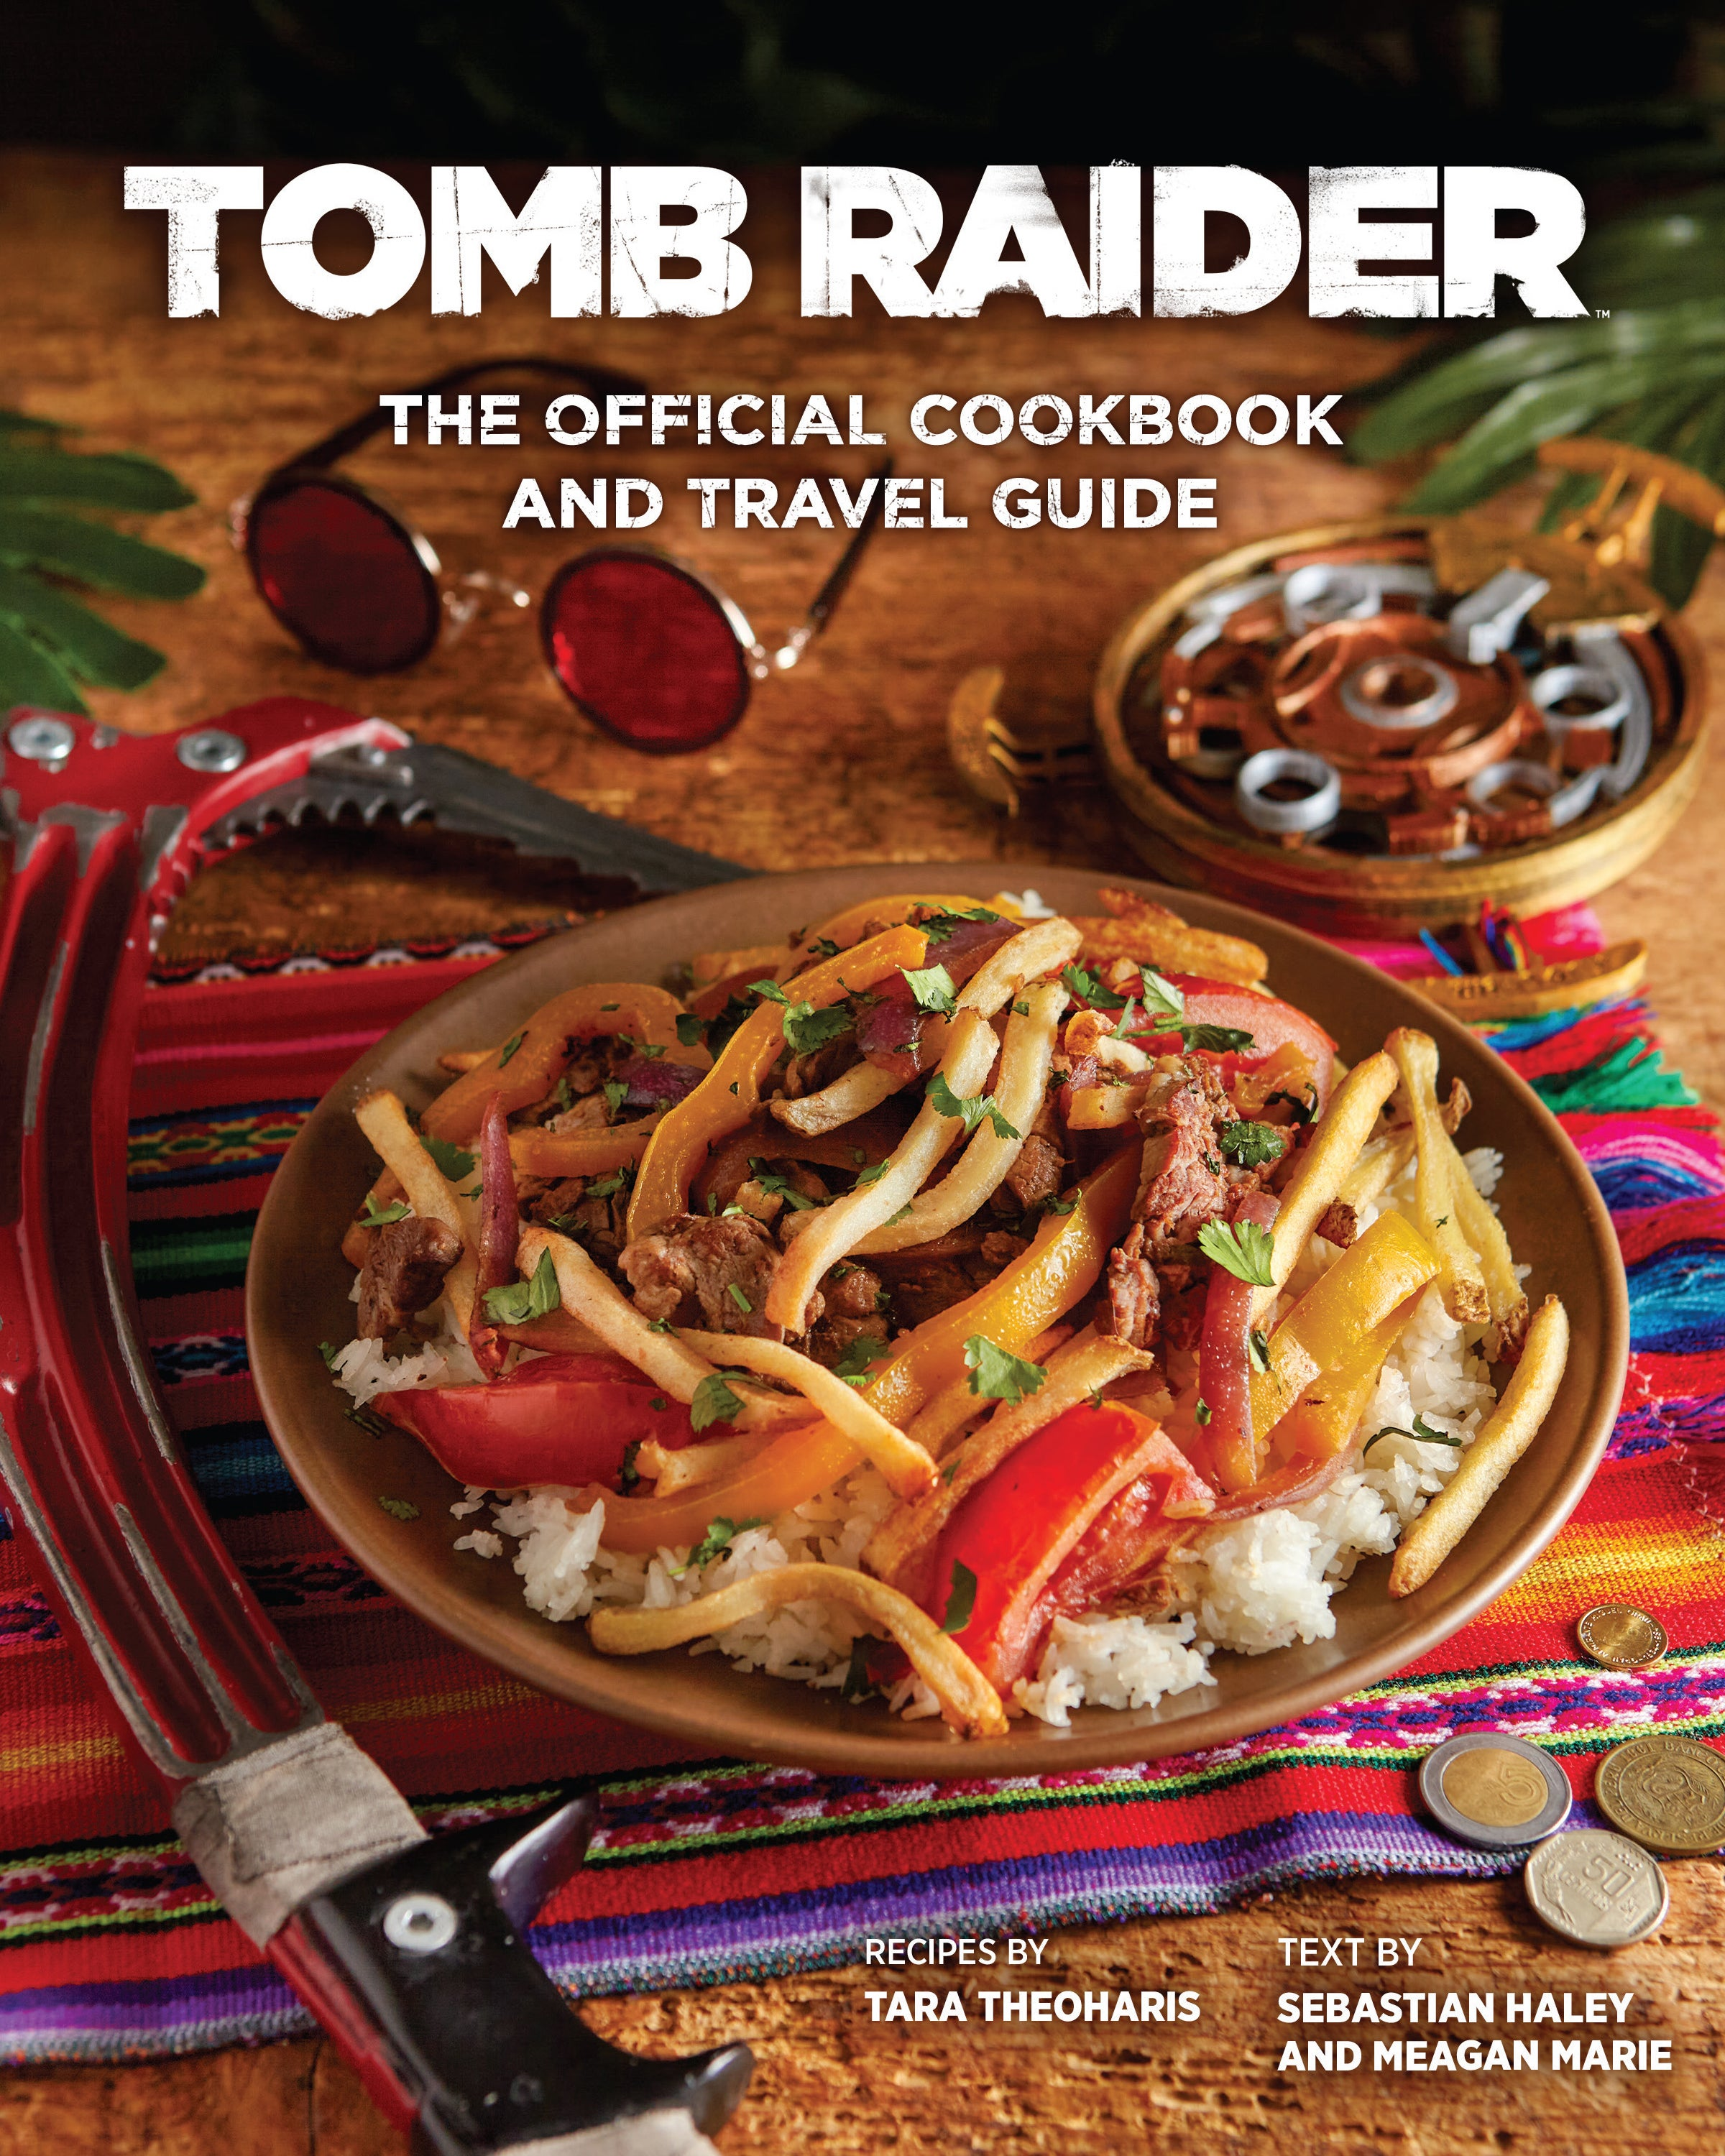 A graphic of the front cover of the upcoming Tomb Raider cookbook and travel guide. It shows a bowl of food surrounded by varied Tomb Raider artifacts, like Lara's classic round glasses or her survivor trilogy climbing axe.